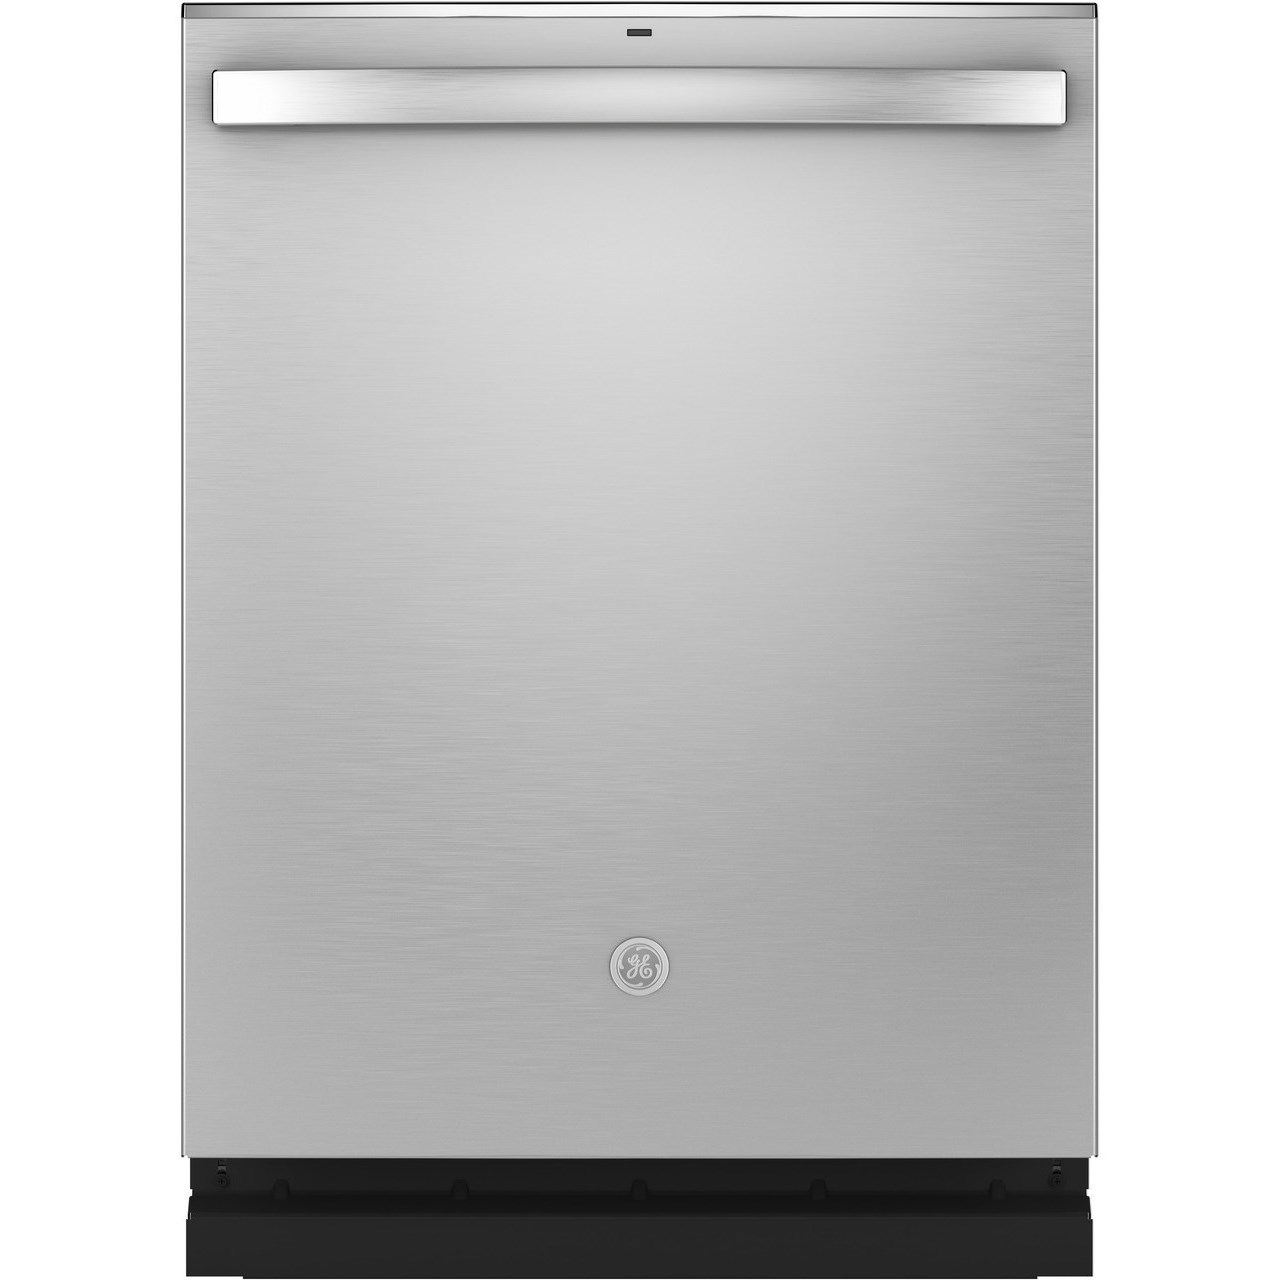 Dishwashers - GE GE® Stainless Steel Interior Dishwasher by GE Appliances at Furniture and ApplianceMart